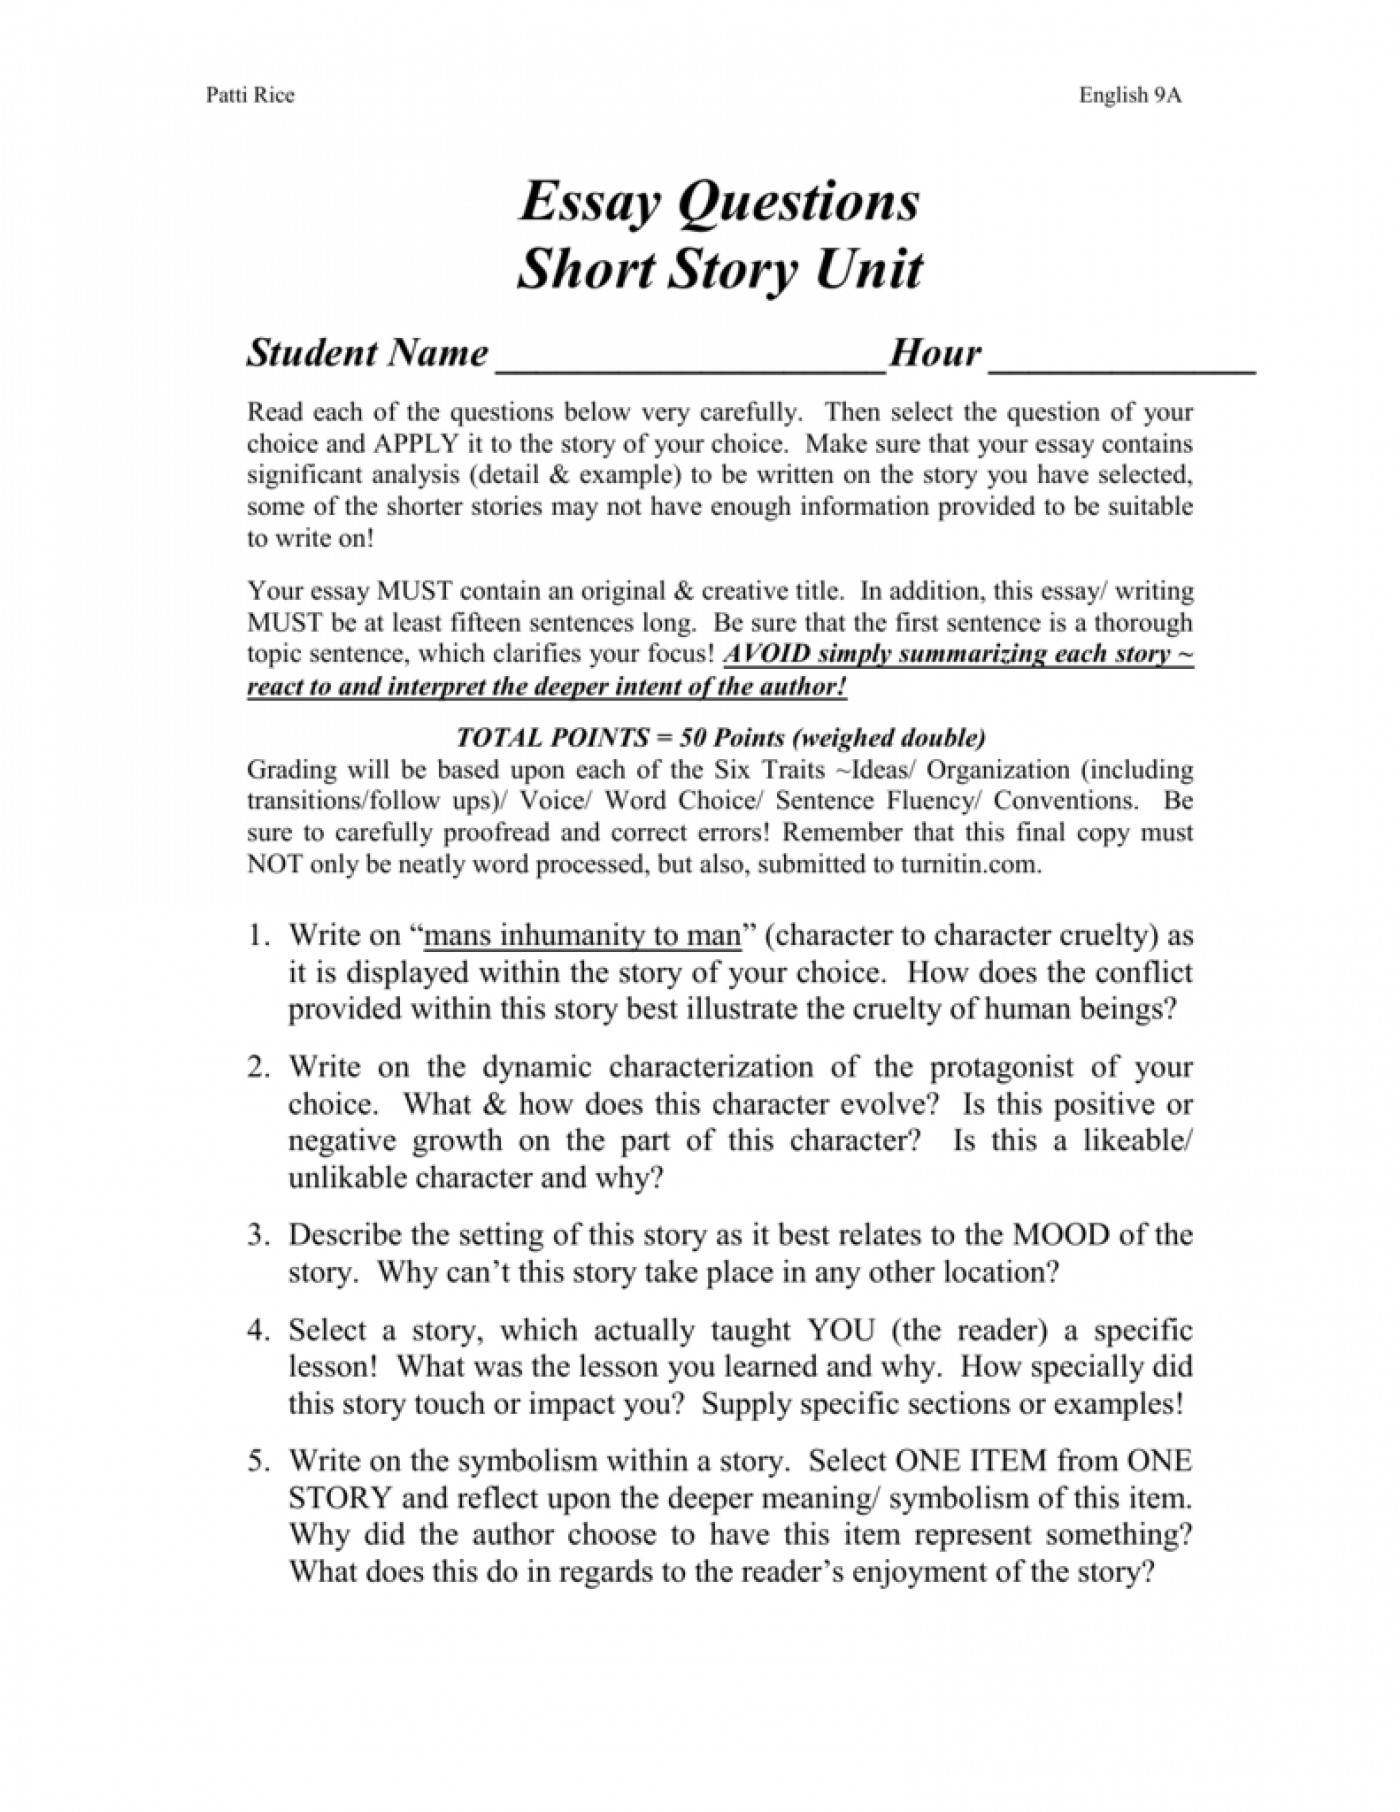 007 008001643 1 Short Stories In Essays Essay Impressive Fiction Analysis Examples Story Format 1400